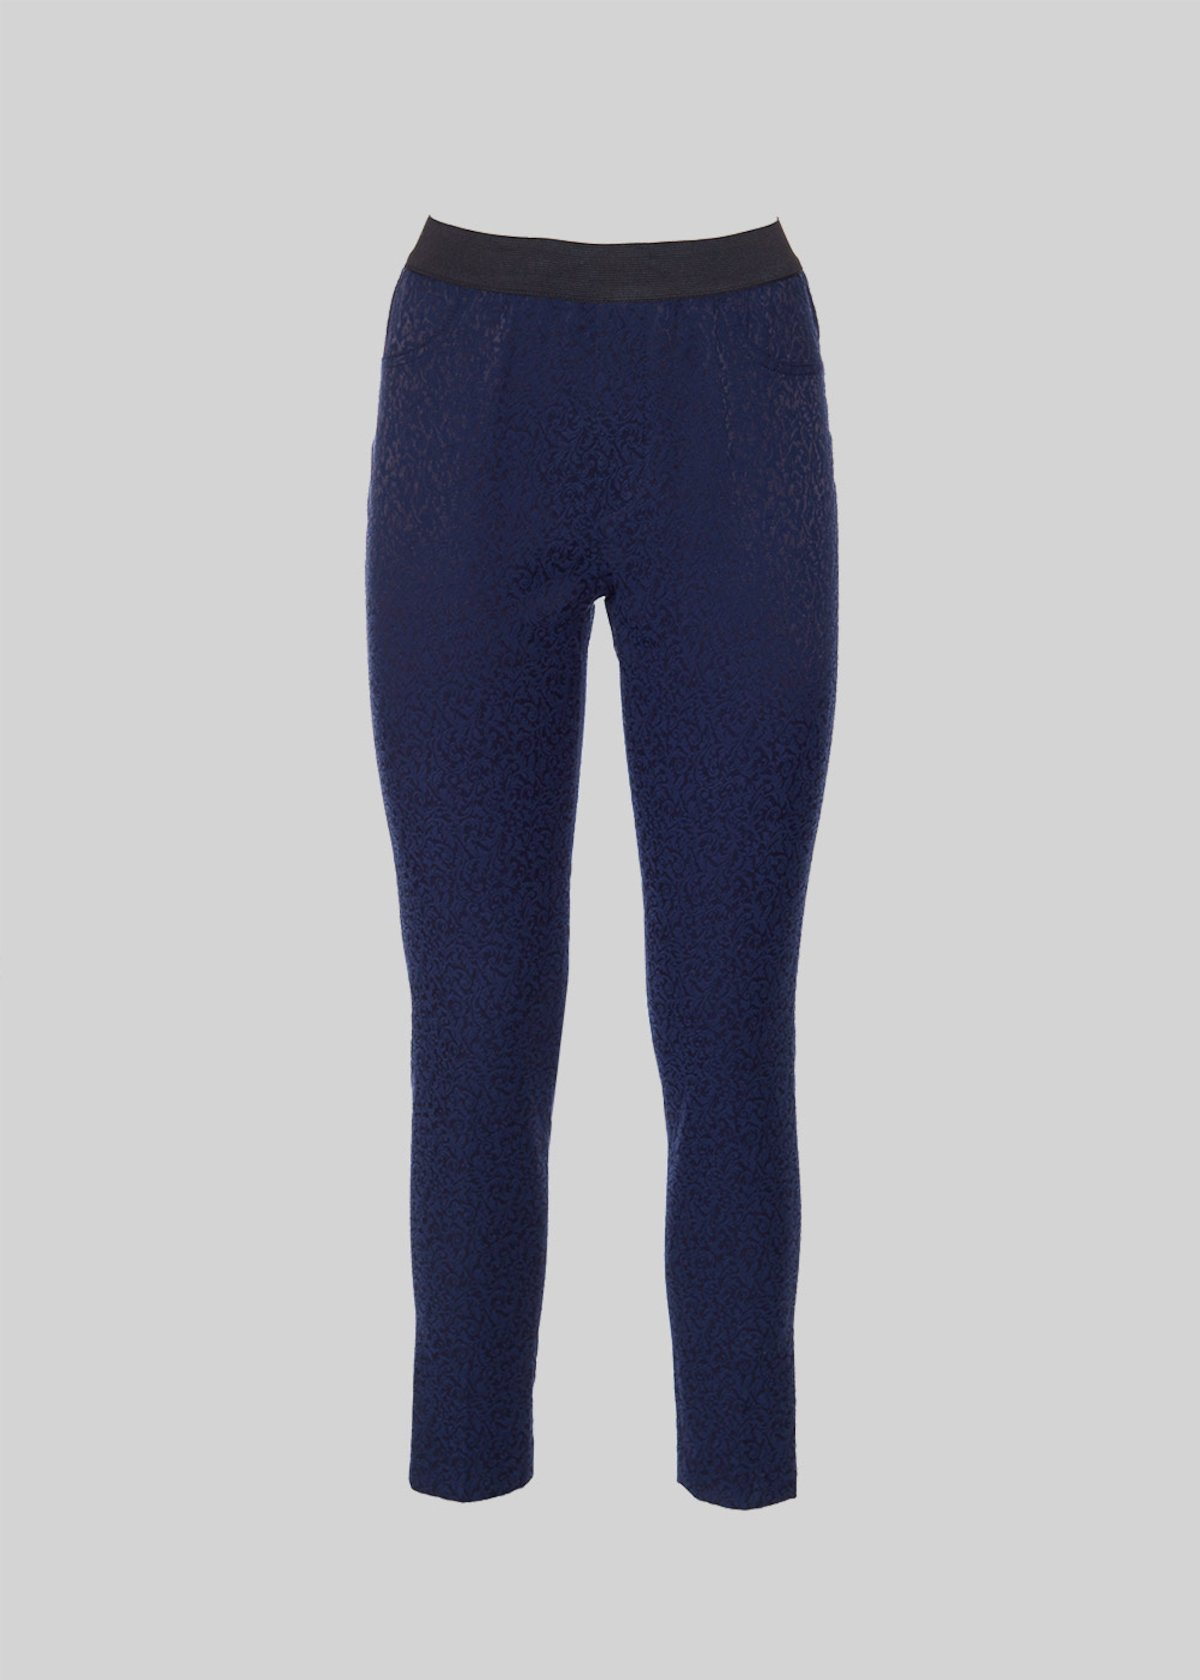 Pantaloni Paride jeggings in tessuto damascato - Black / Medium Blue